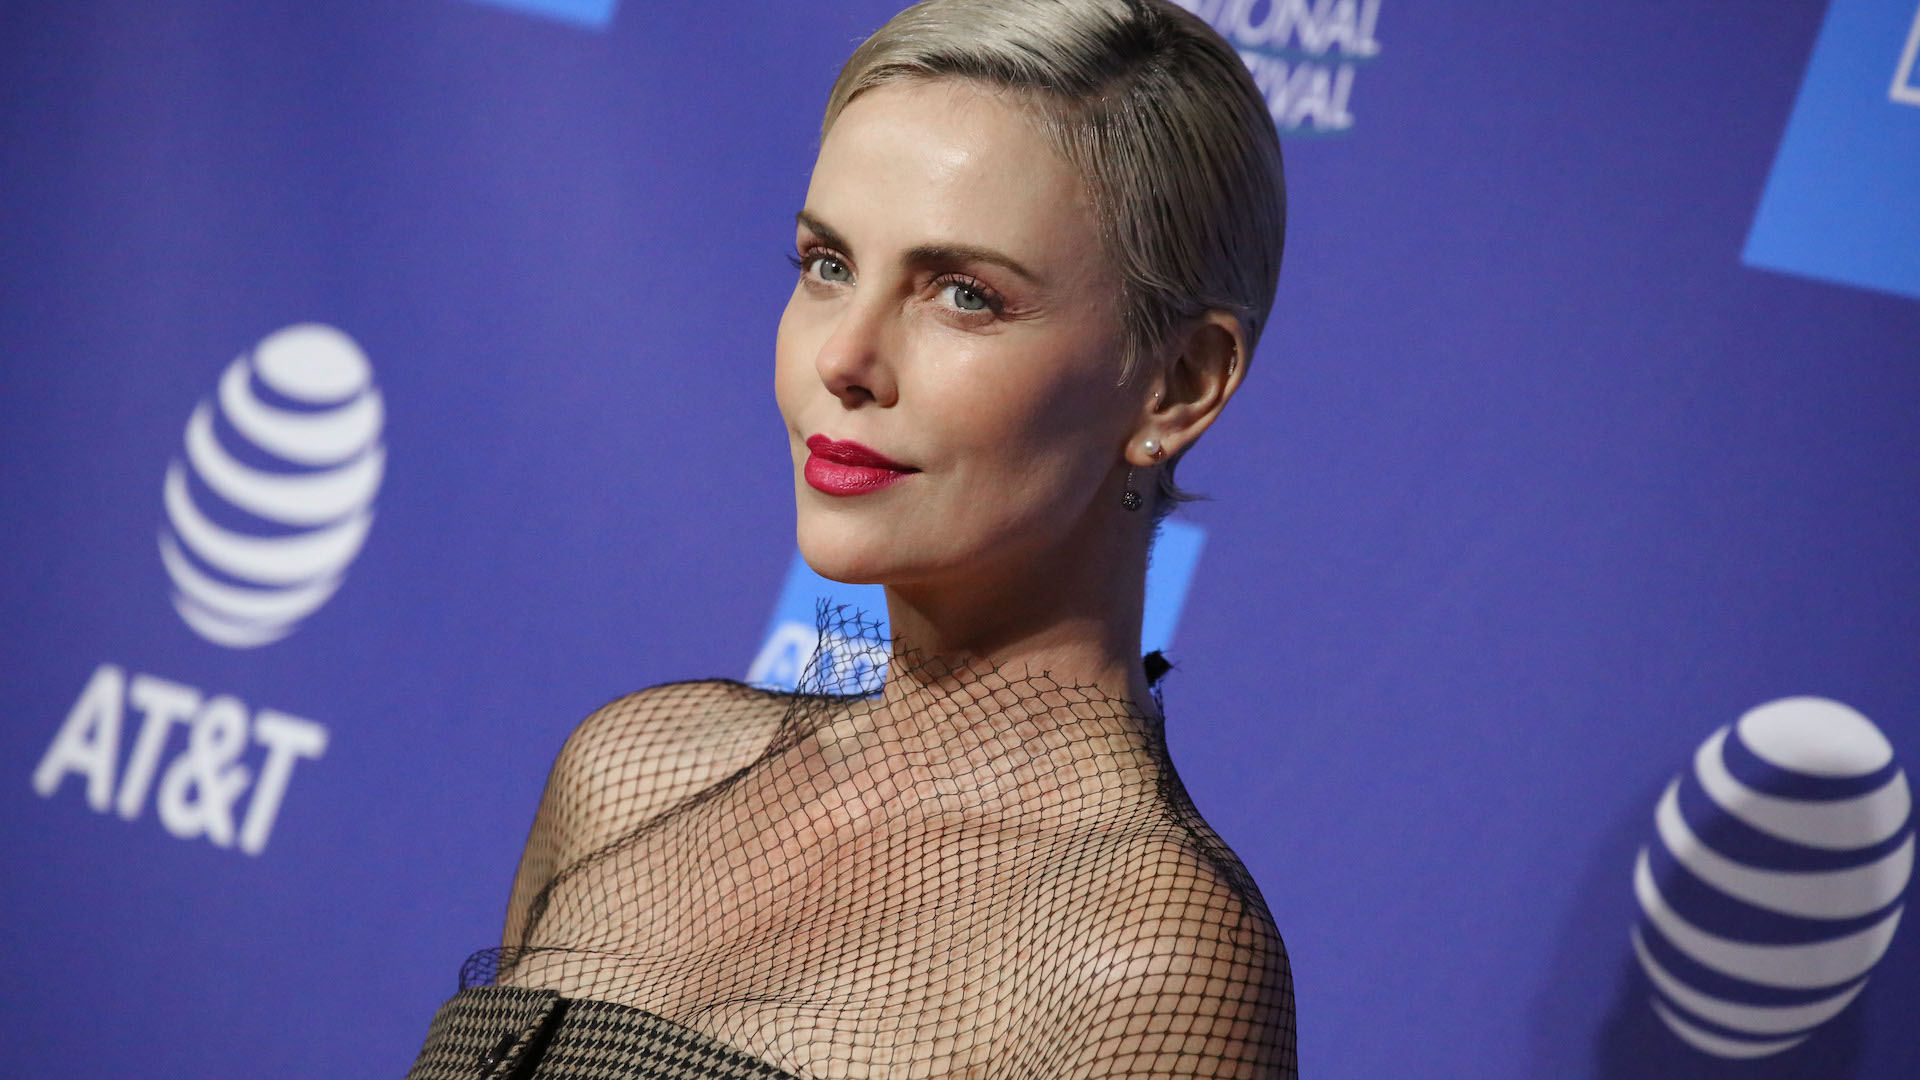 Charlize Theron Just Rocked a Major 2020 Trend You're About to See Everywhere